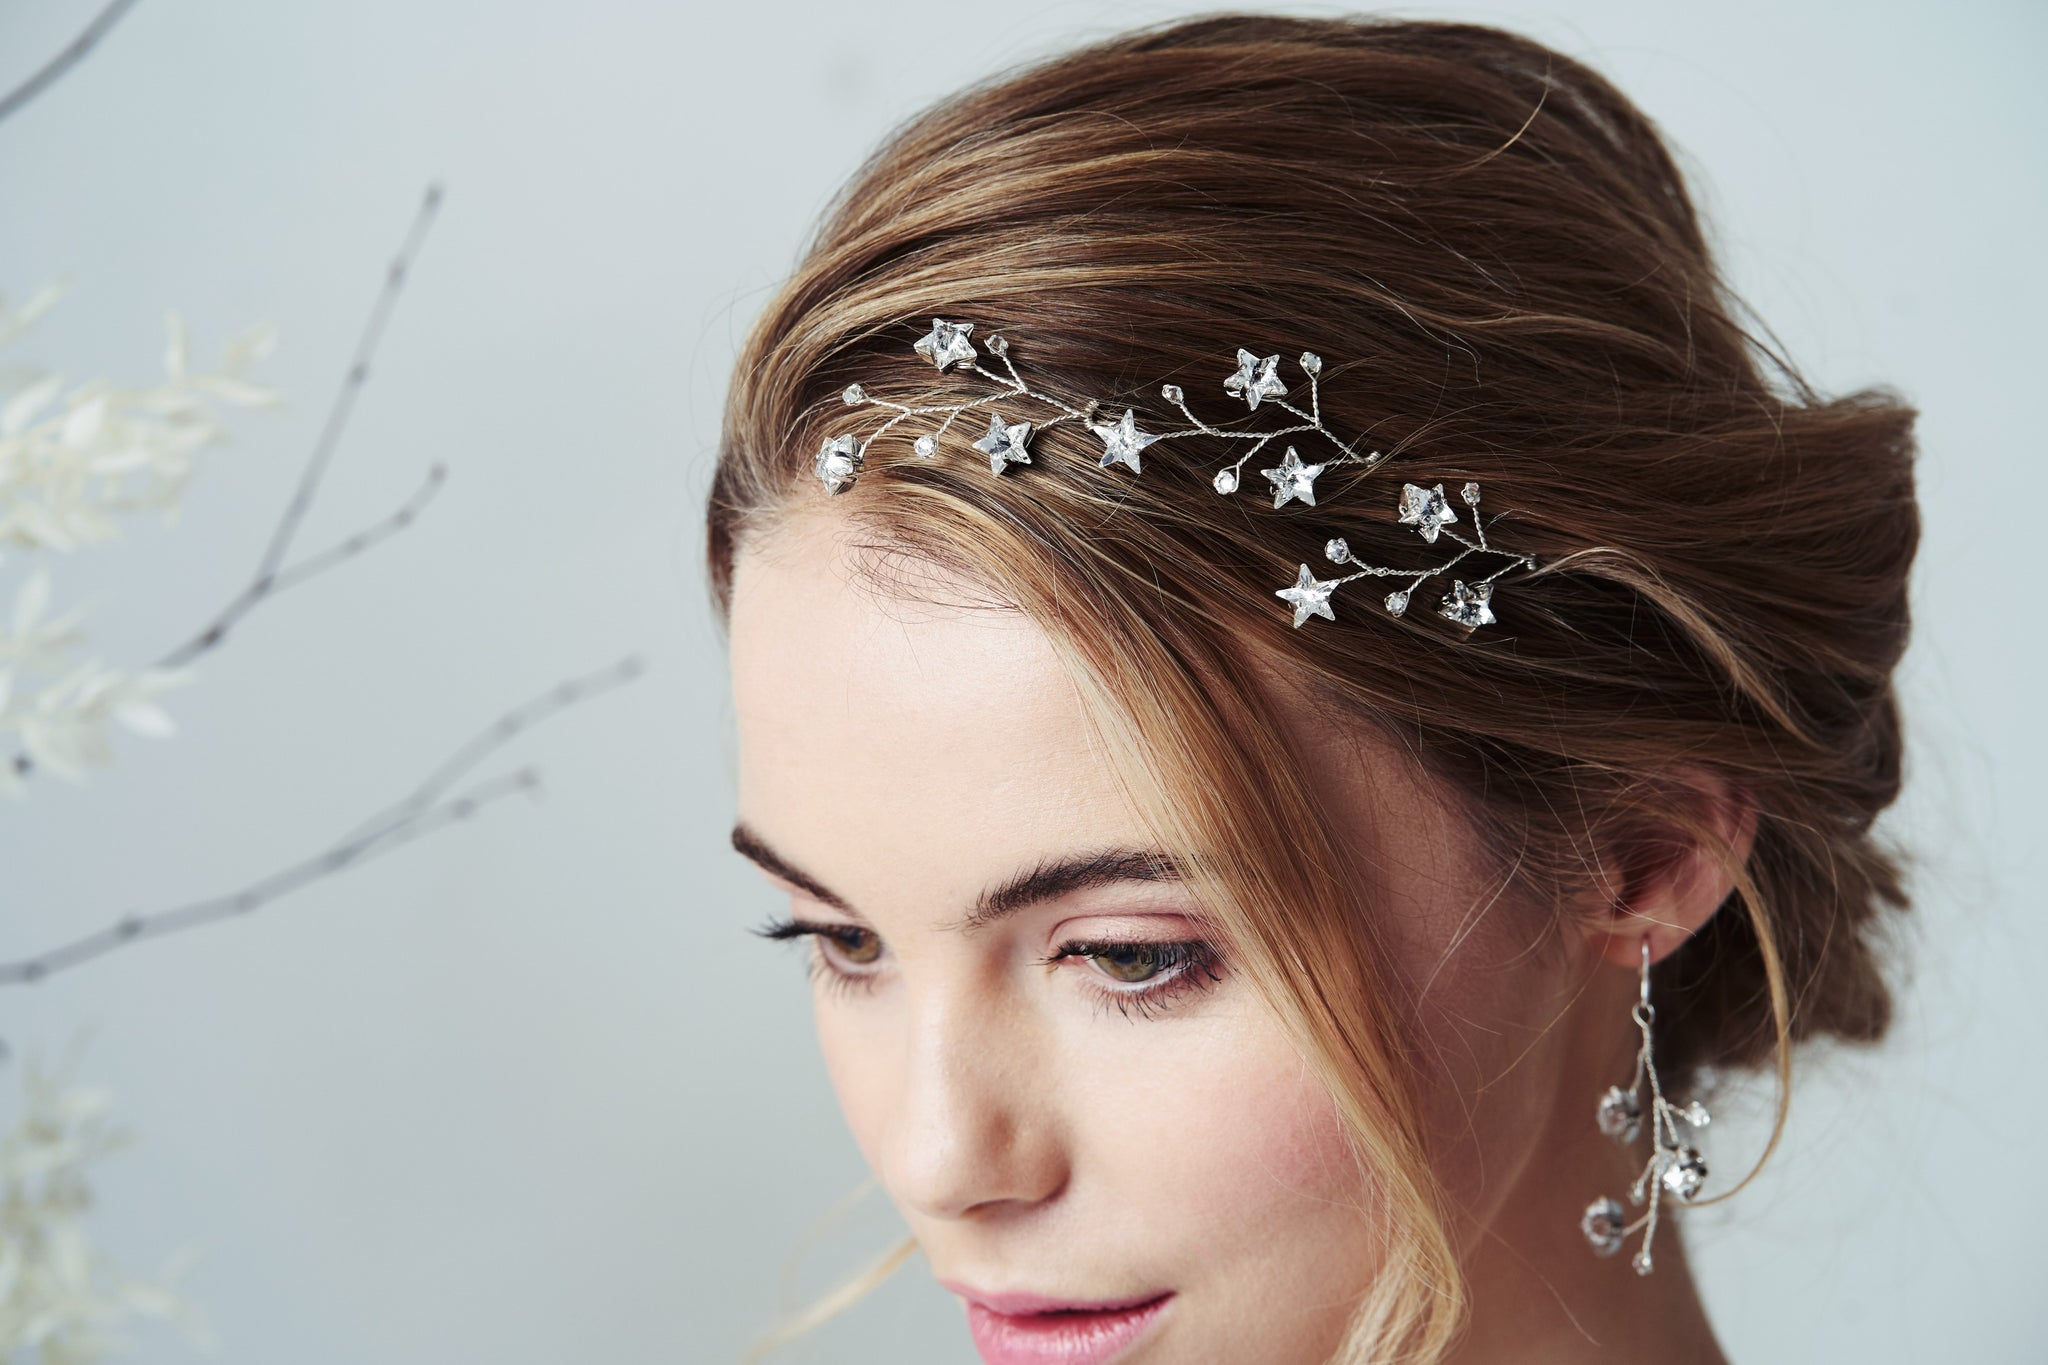 Star constellation Swarovski crystal wedding hairpin trio set in the front of a bridal updo